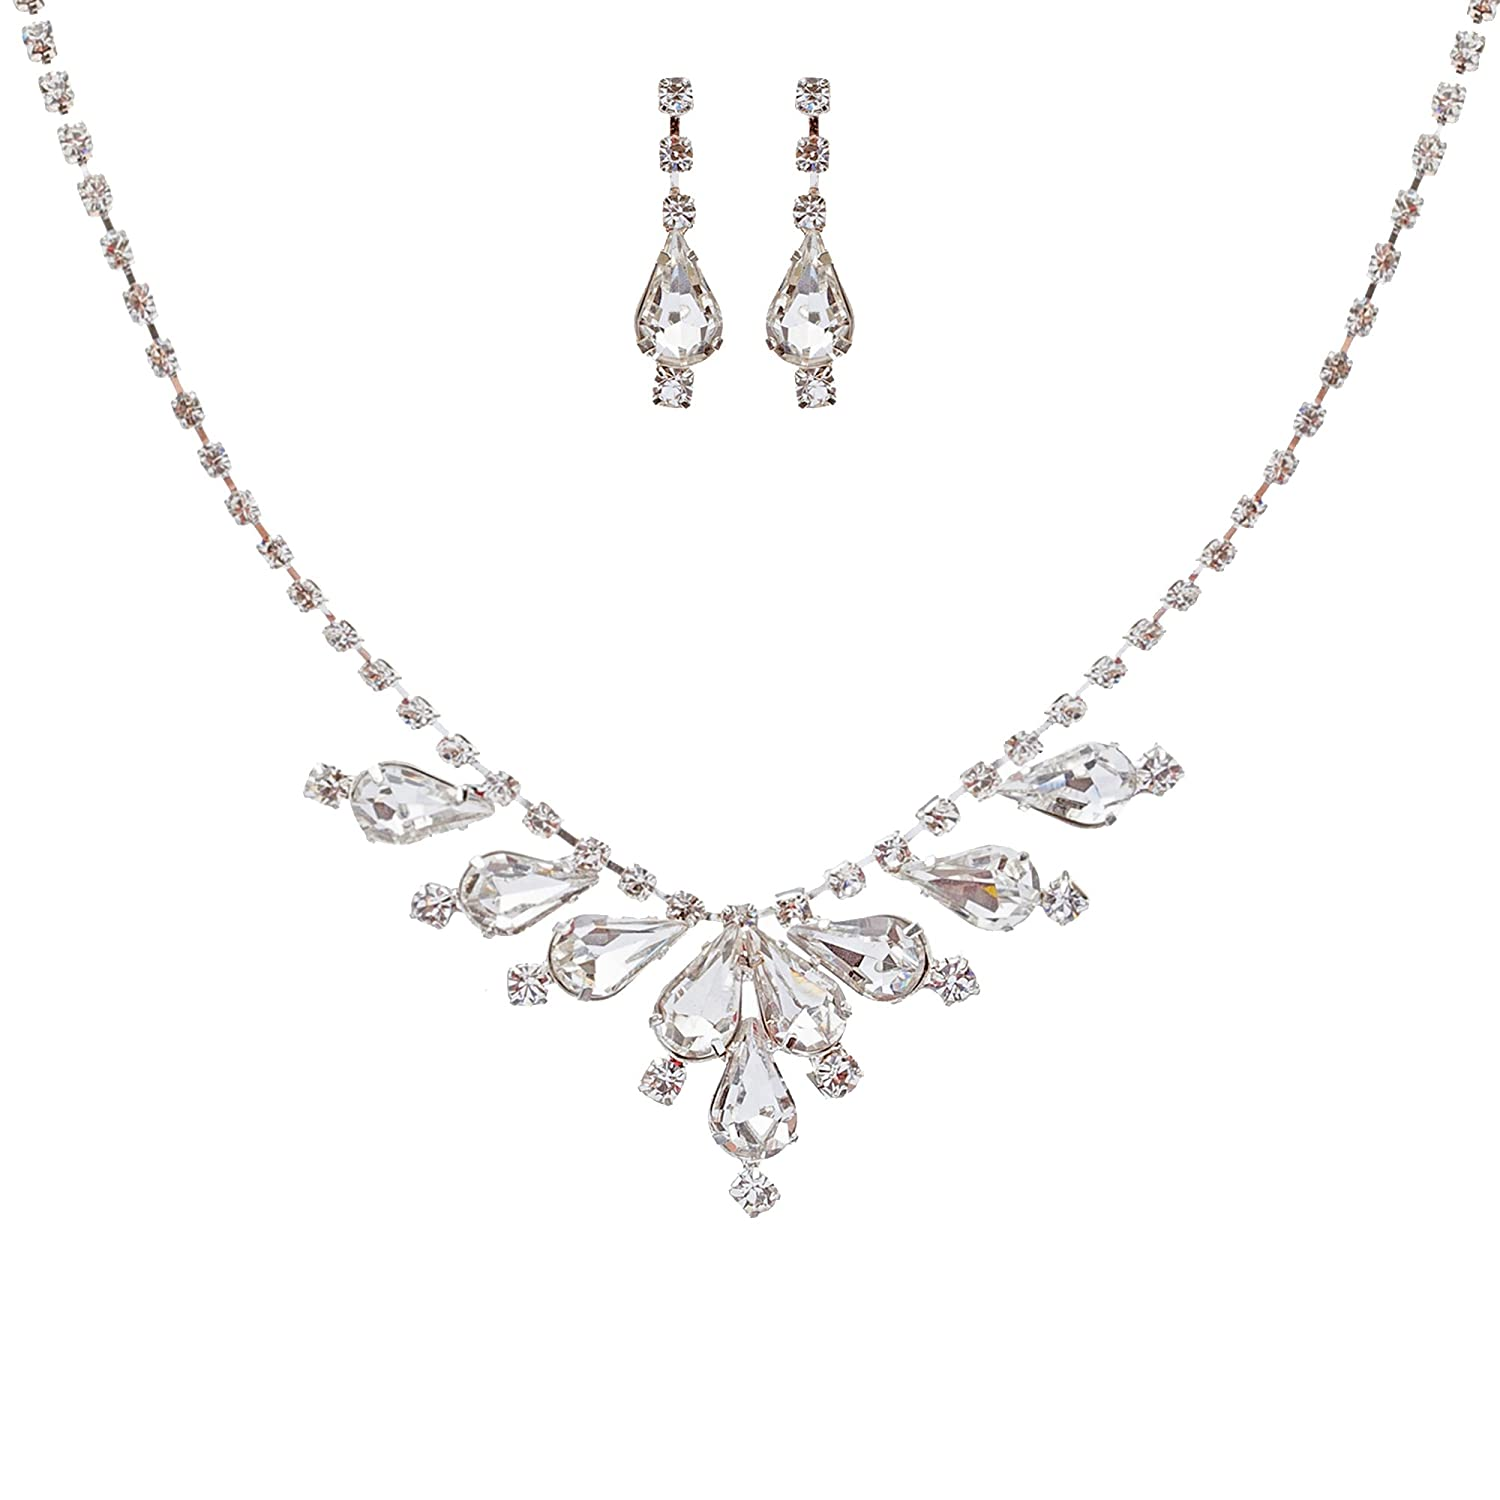 ACCESSORIESFOREVER Bridal Wedding Prom Jewelry Set Crystal Rhinestone Classy Stylish Design Necklace